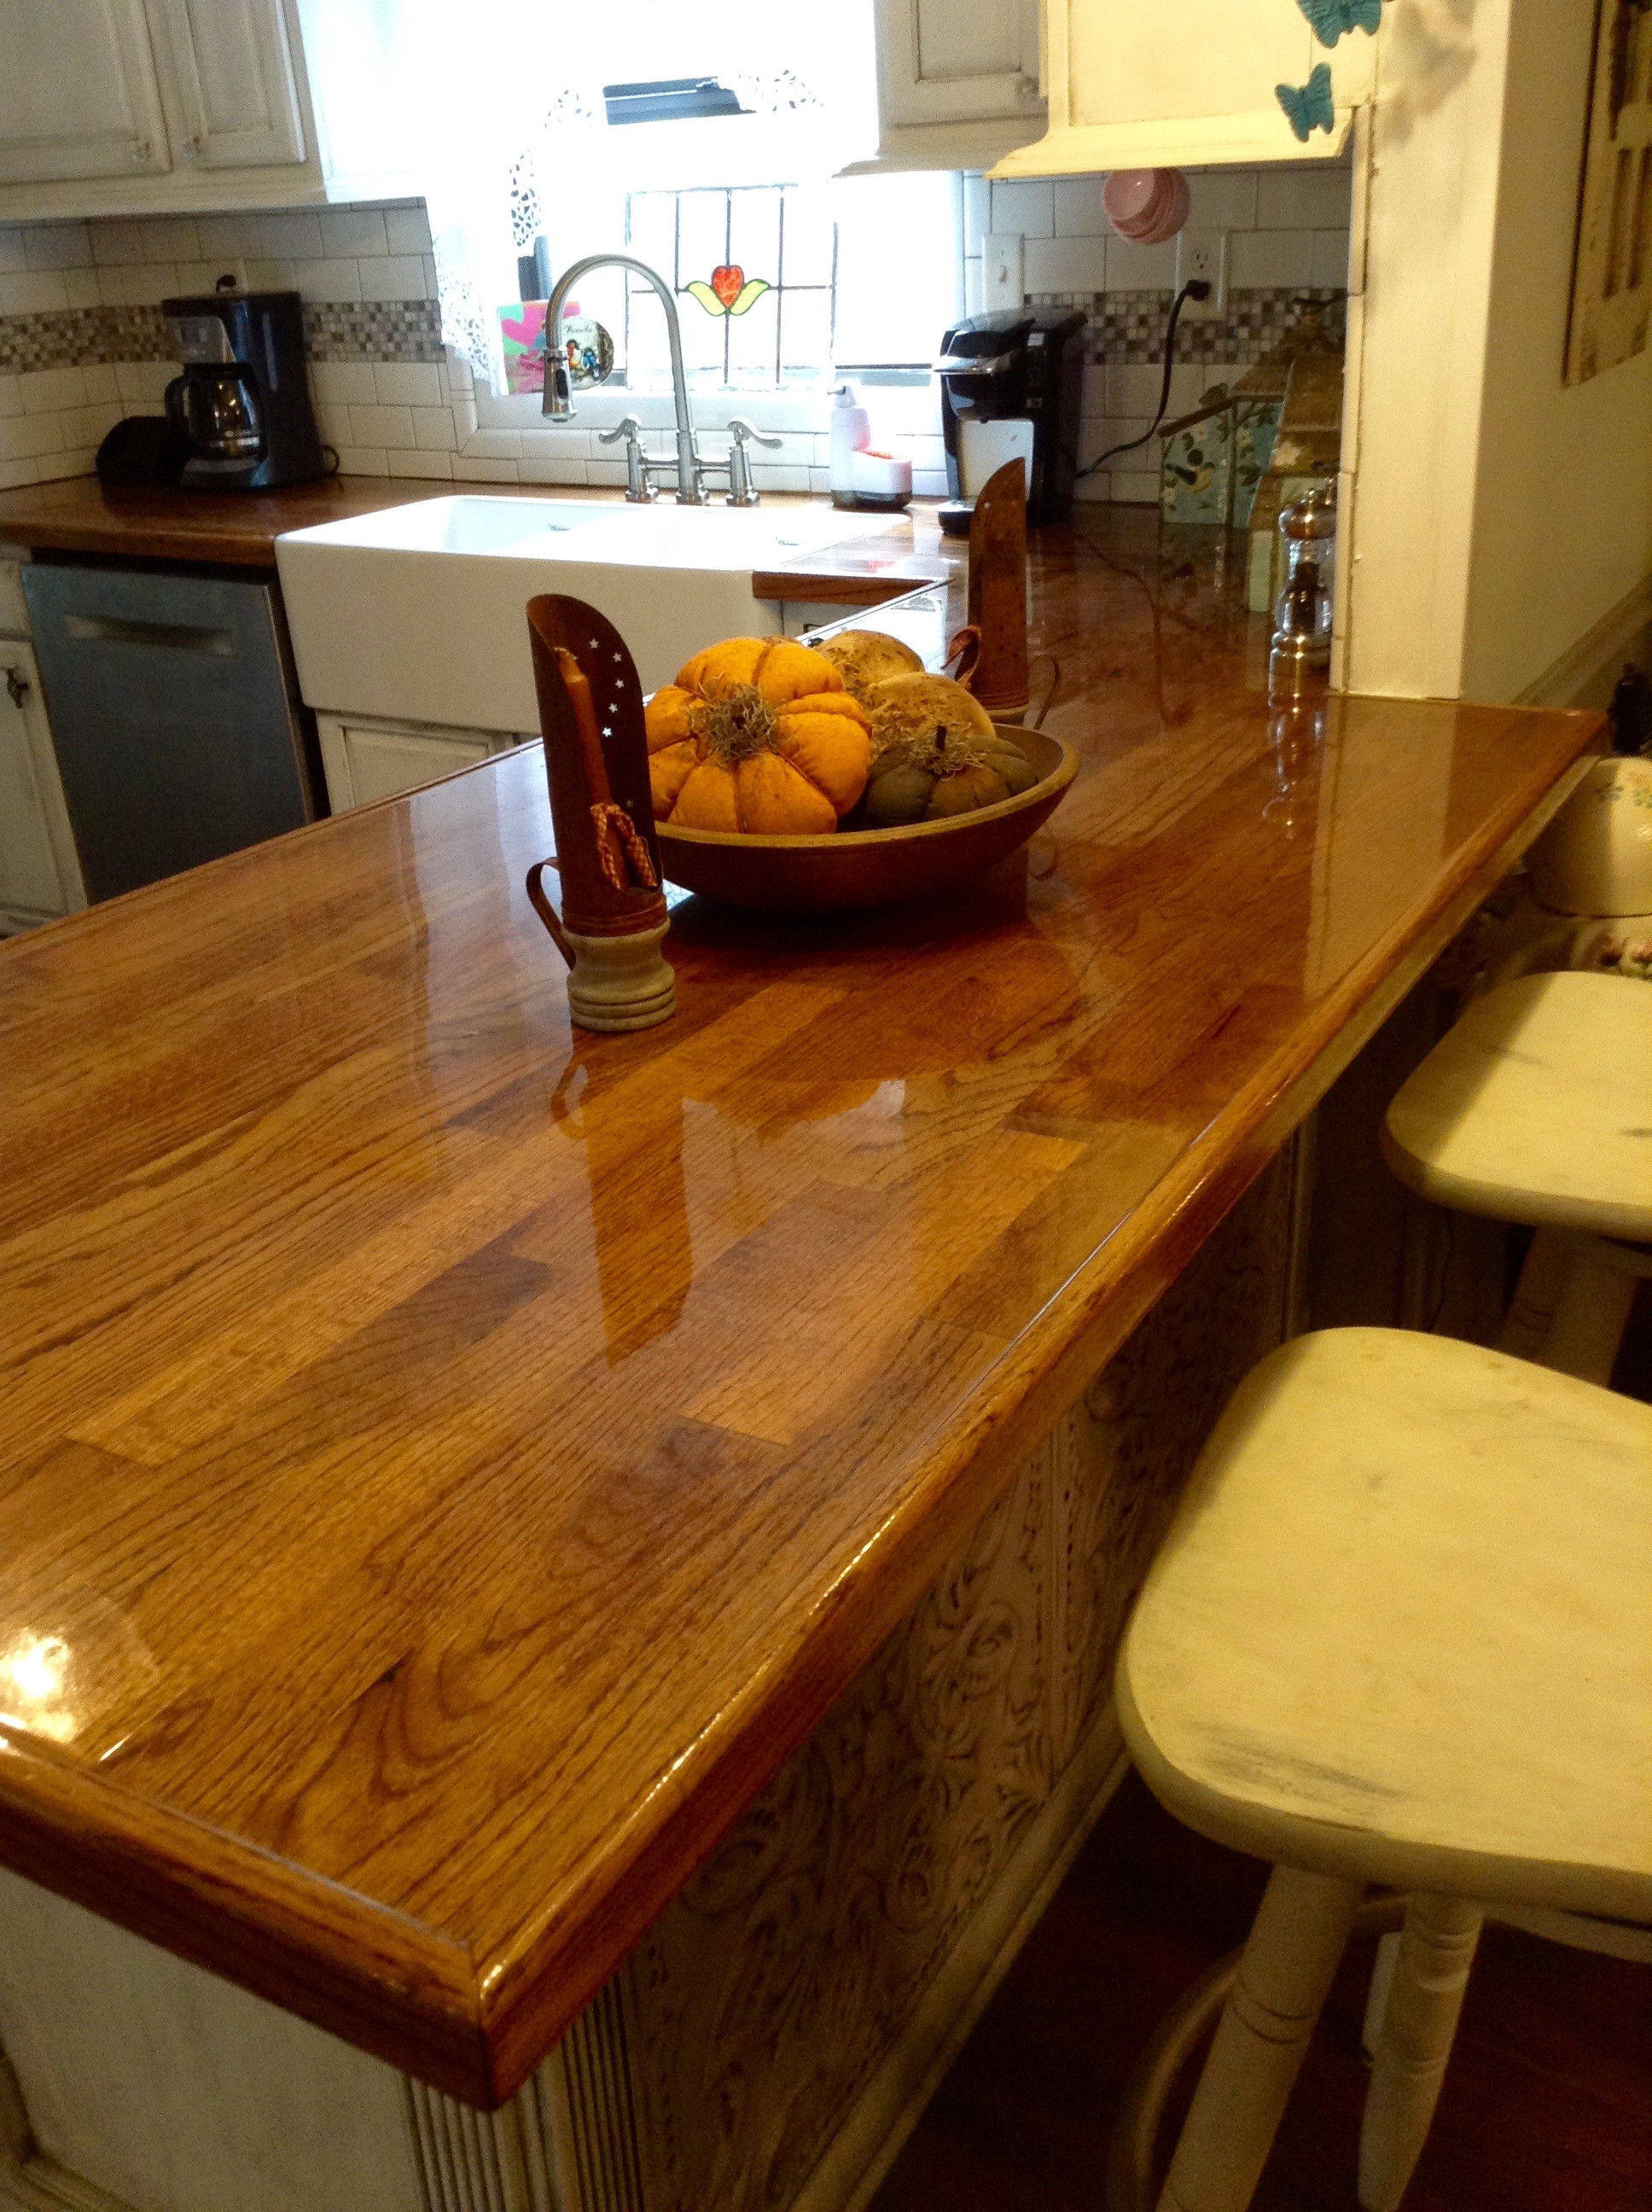 Best ideas about DIY Wooden Countertops . Save or Pin Remodelaholic Now.